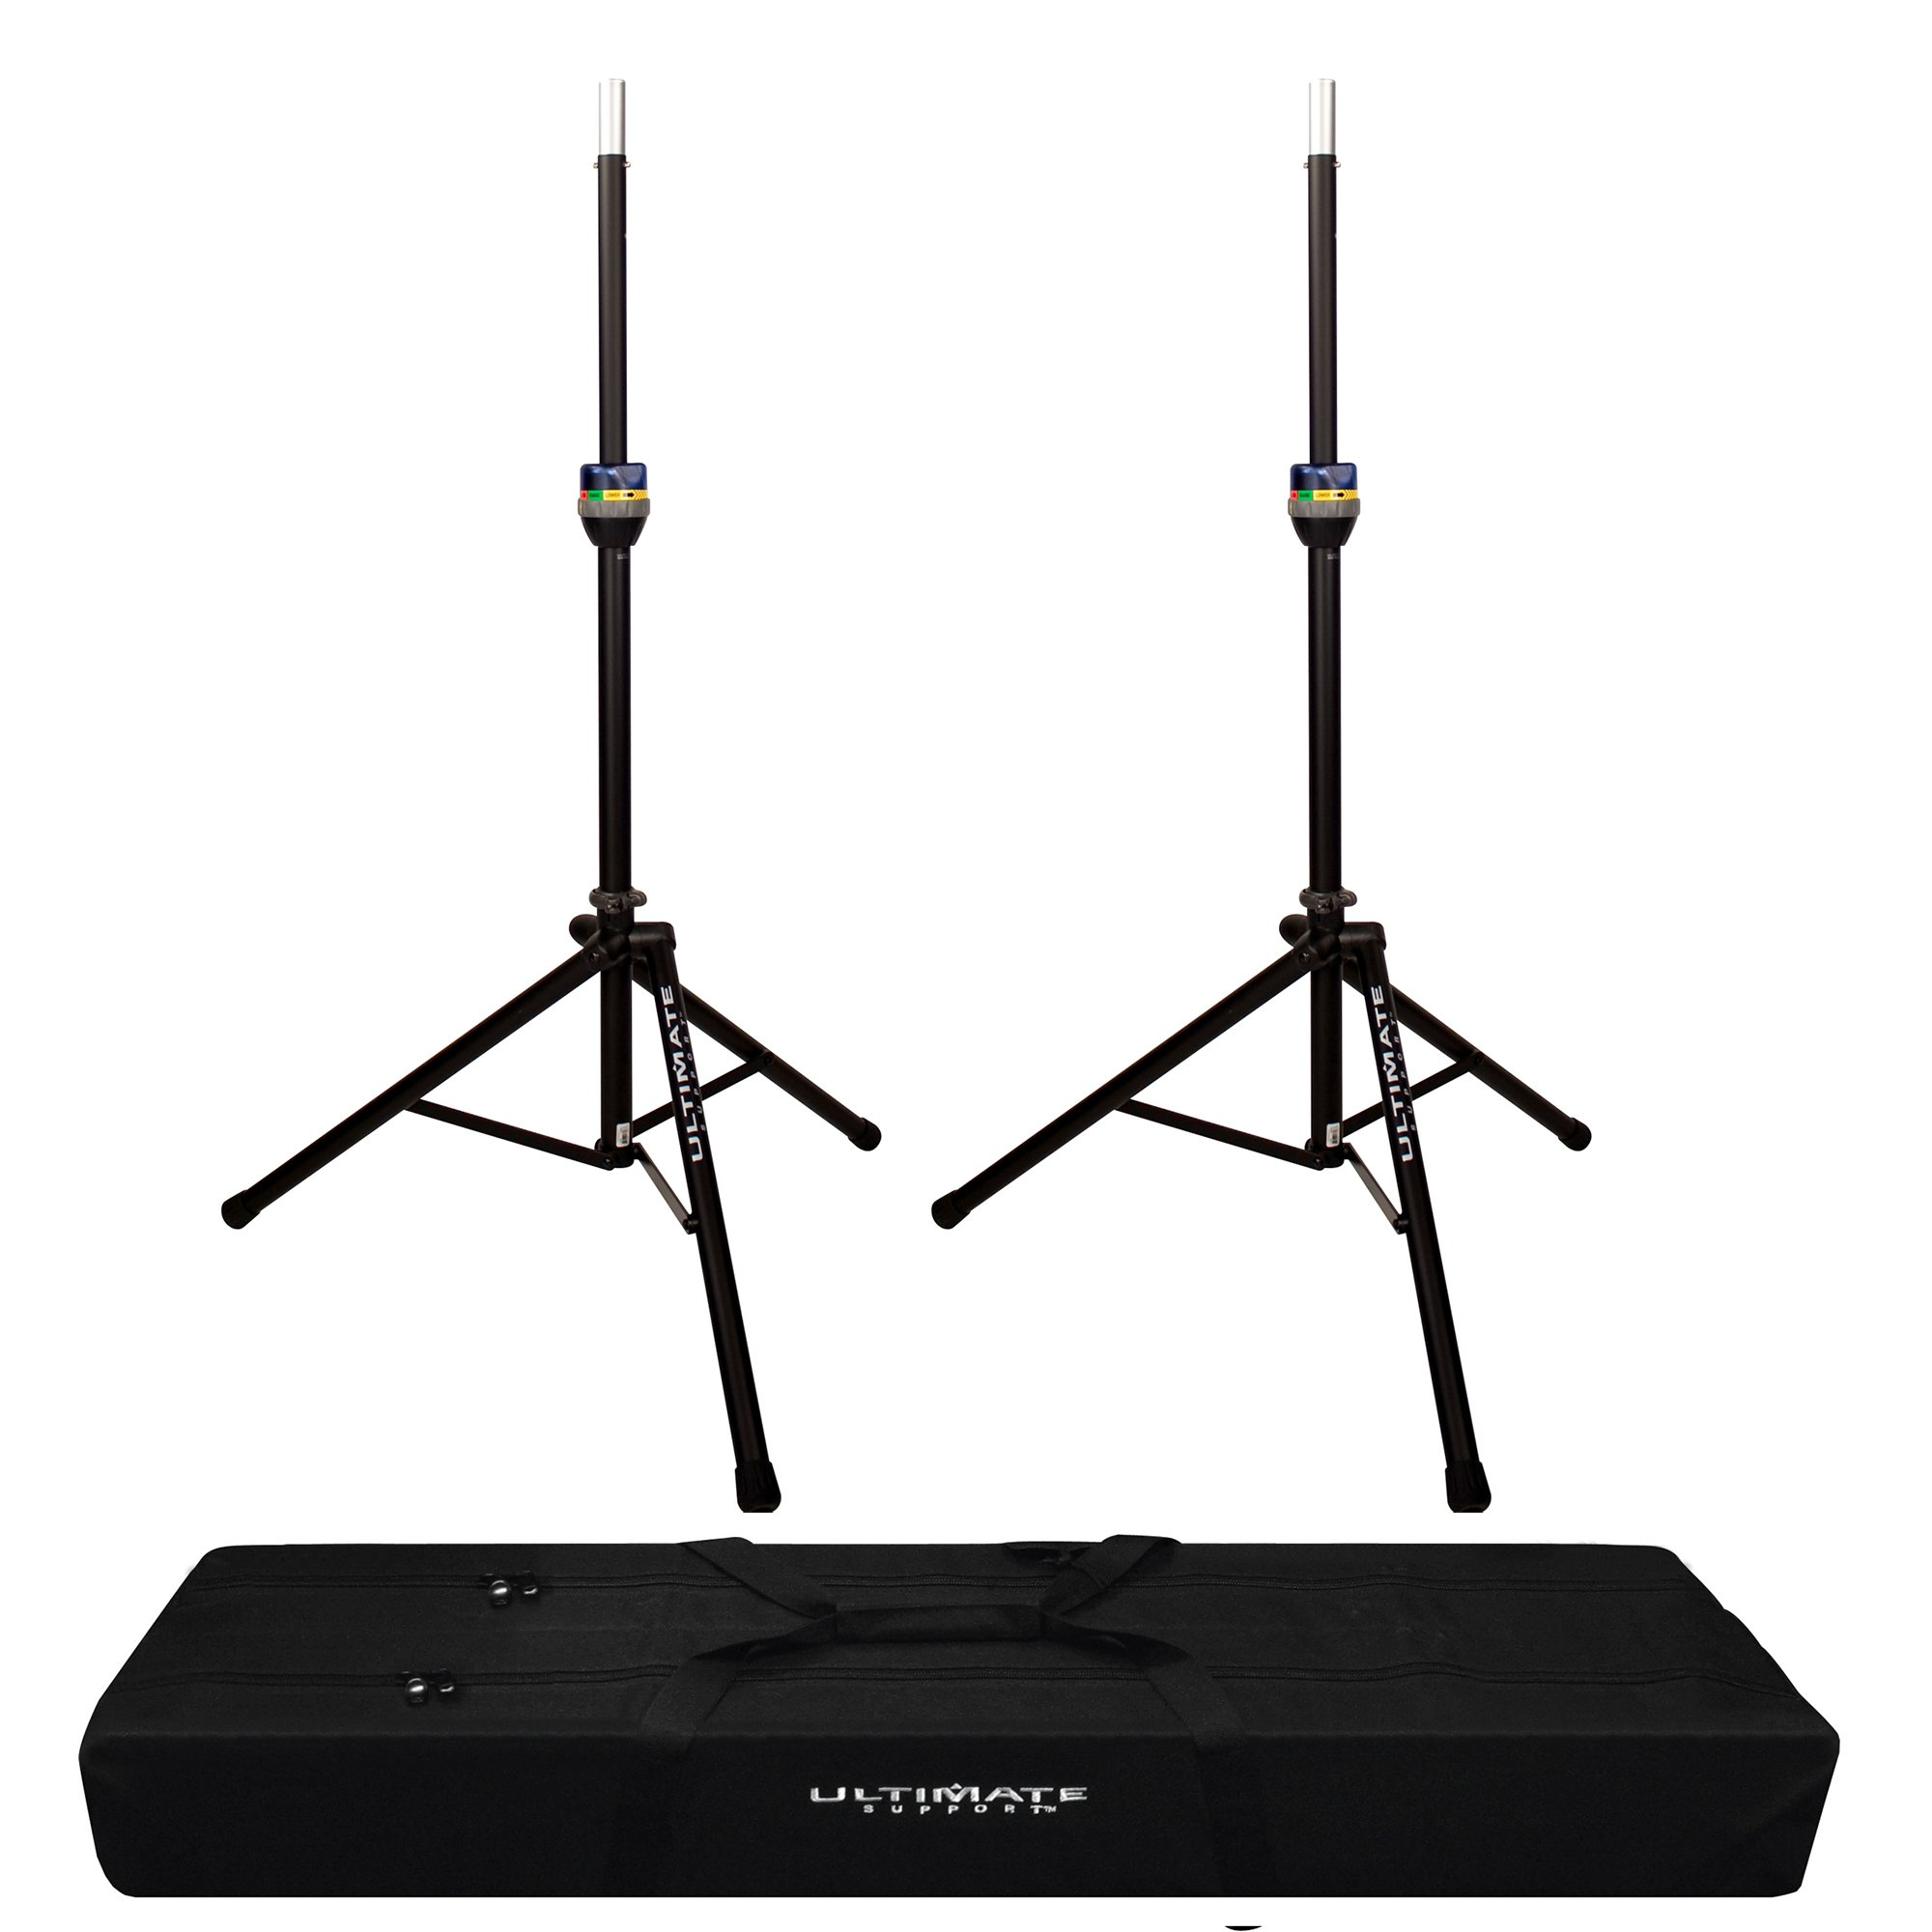 2x TS-90 TeleLock Speaker Stand with Padded Dual Tripod Tote Bag by FP Logistics, Ultimate Support (Image #1)